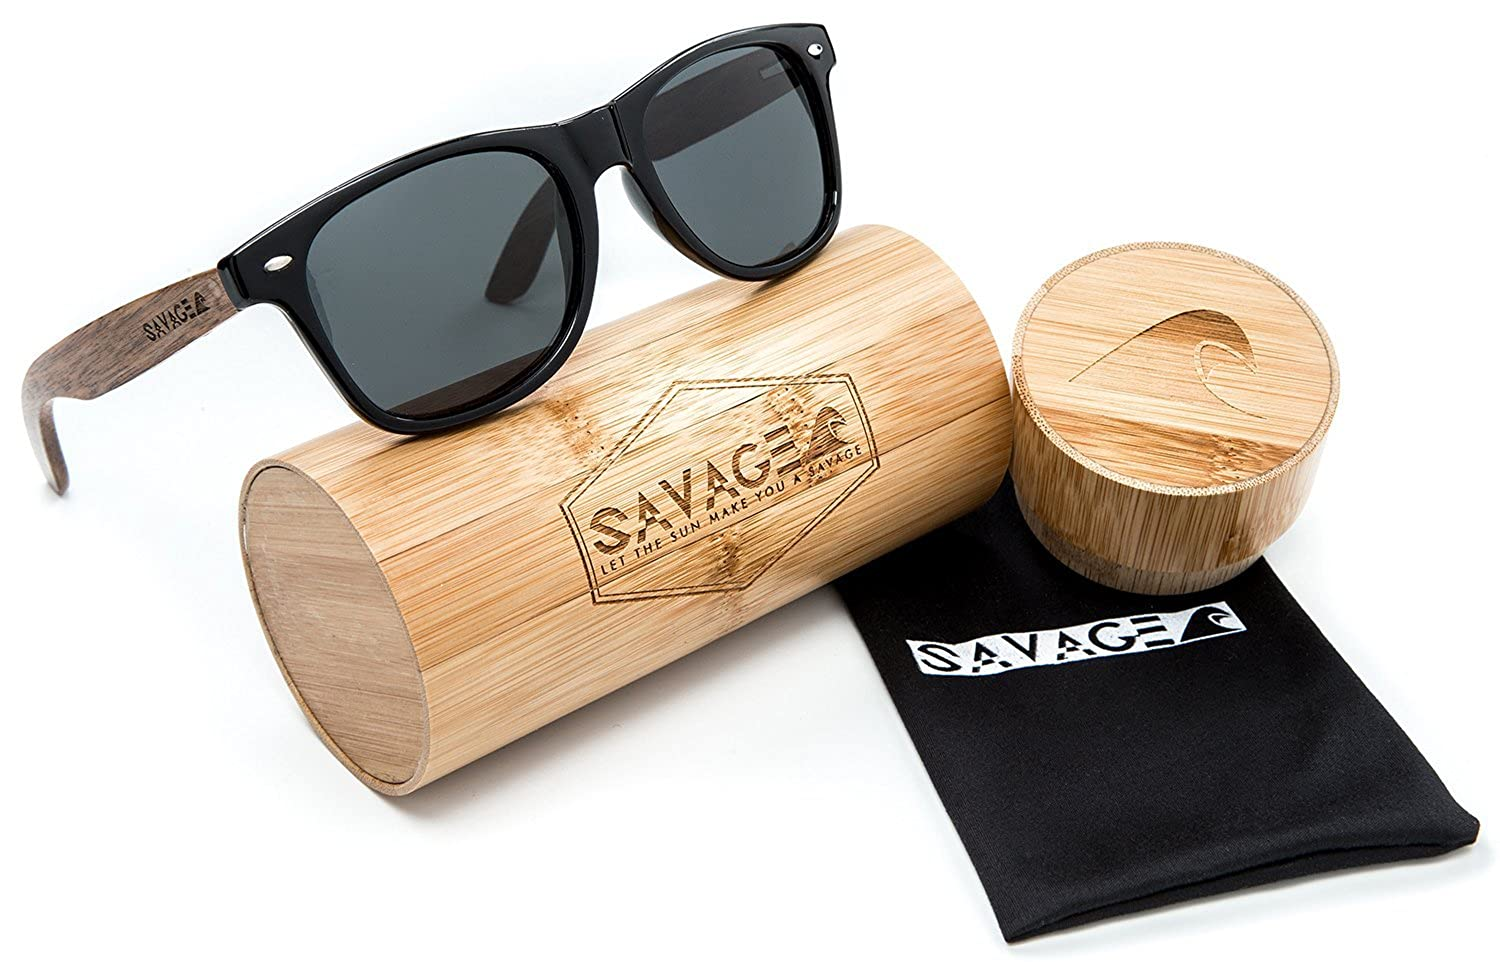 ec9cd24fc3f Amazon.com  SAVAGE original bamboo wayfarer polarized sunglasses -  handmade! (Black)  Clothing